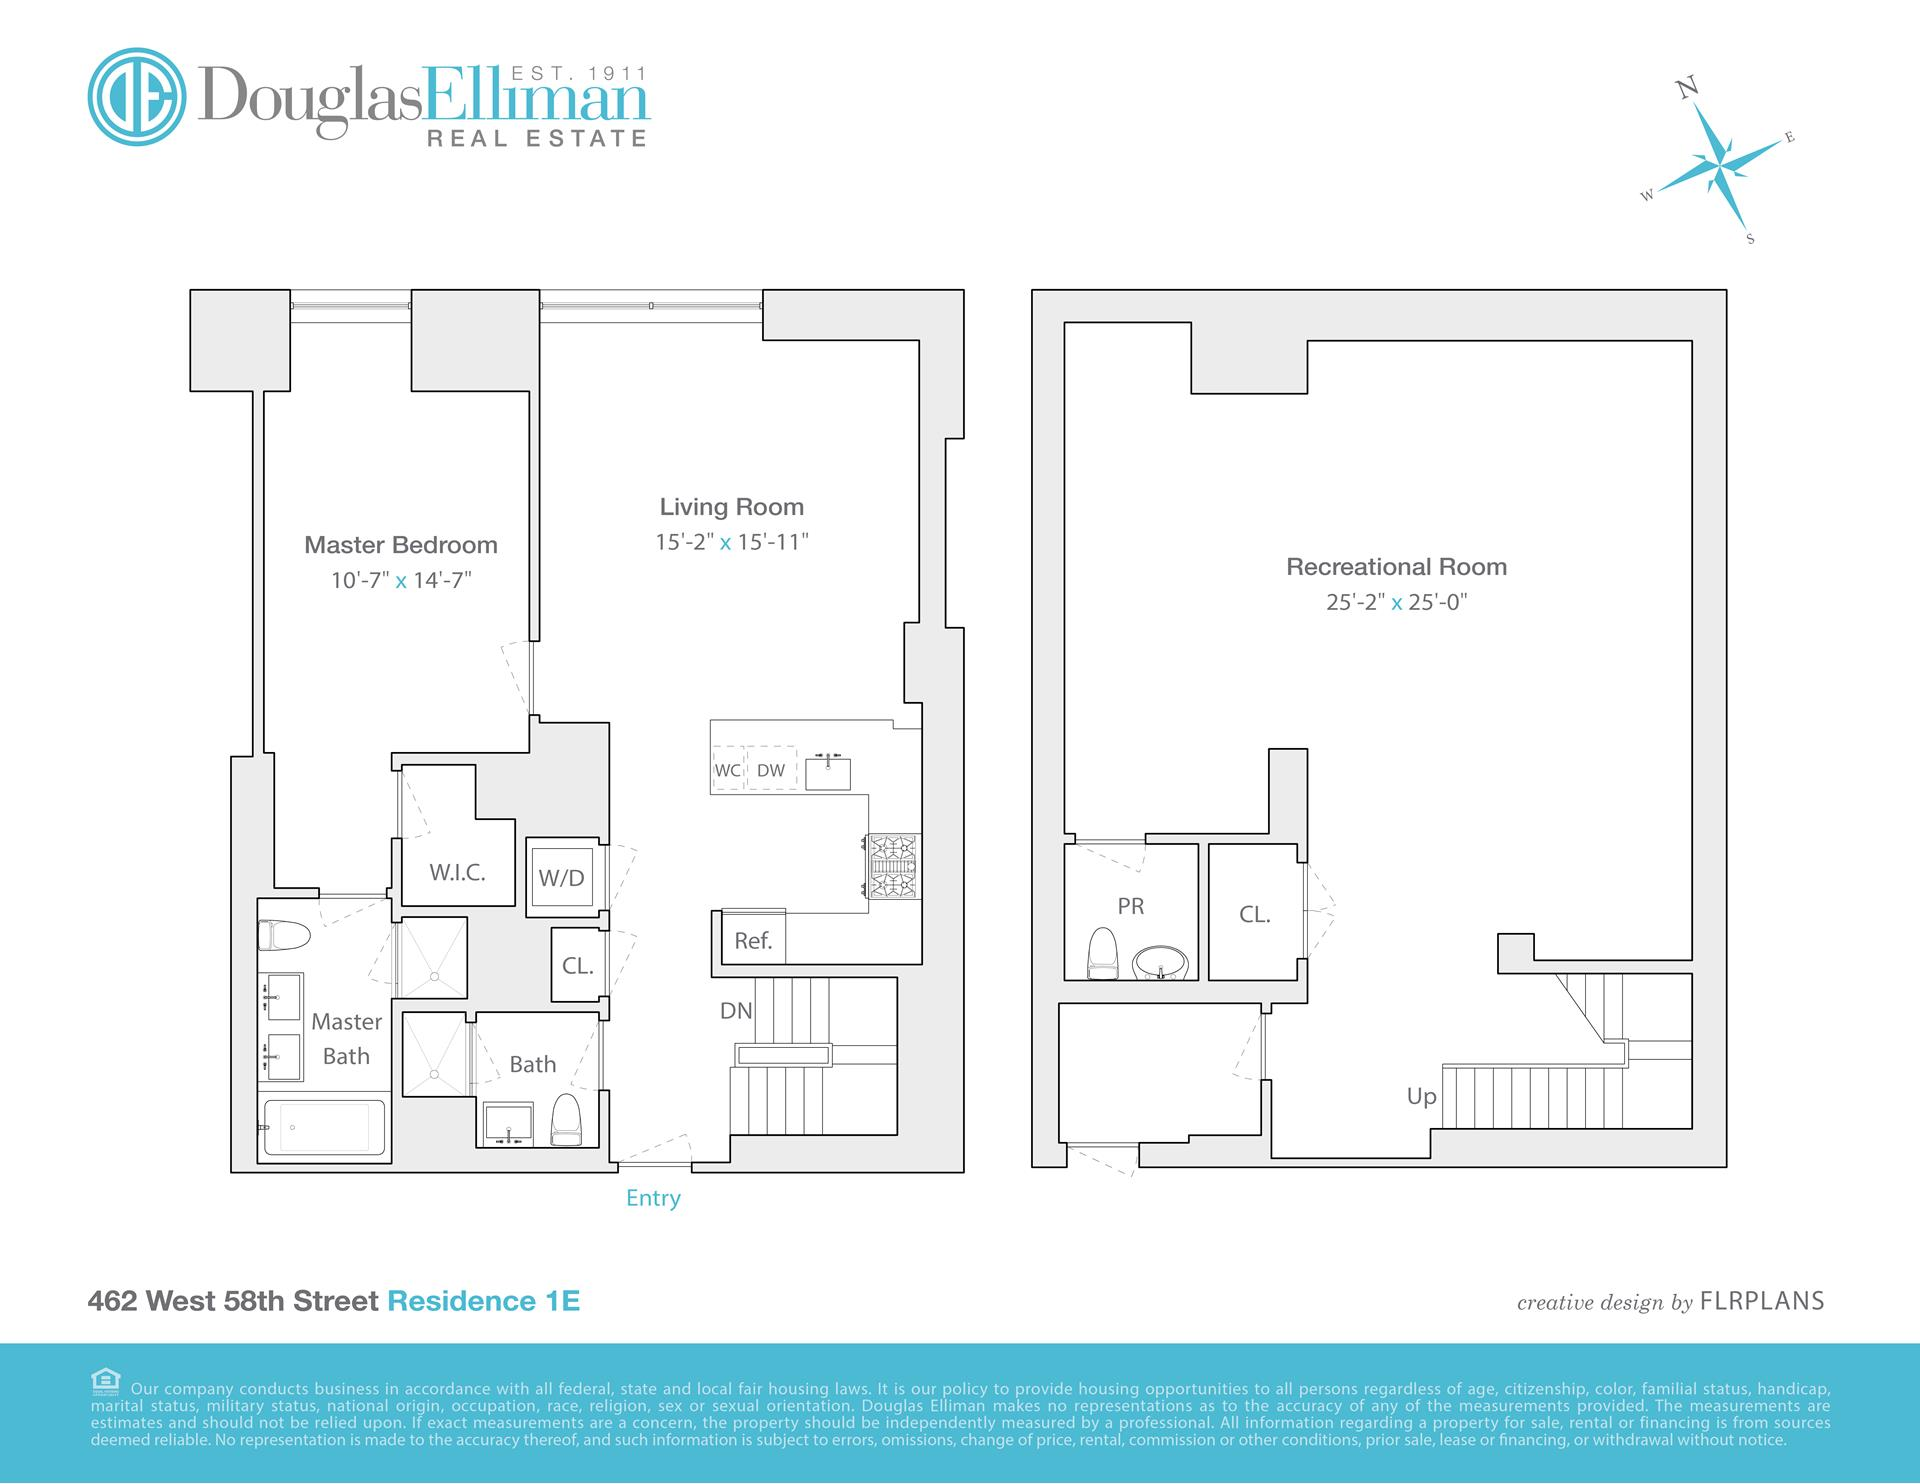 Floor plan of Hudson Hill Condominium, 462 West 58th St, 1E - Clinton, New York